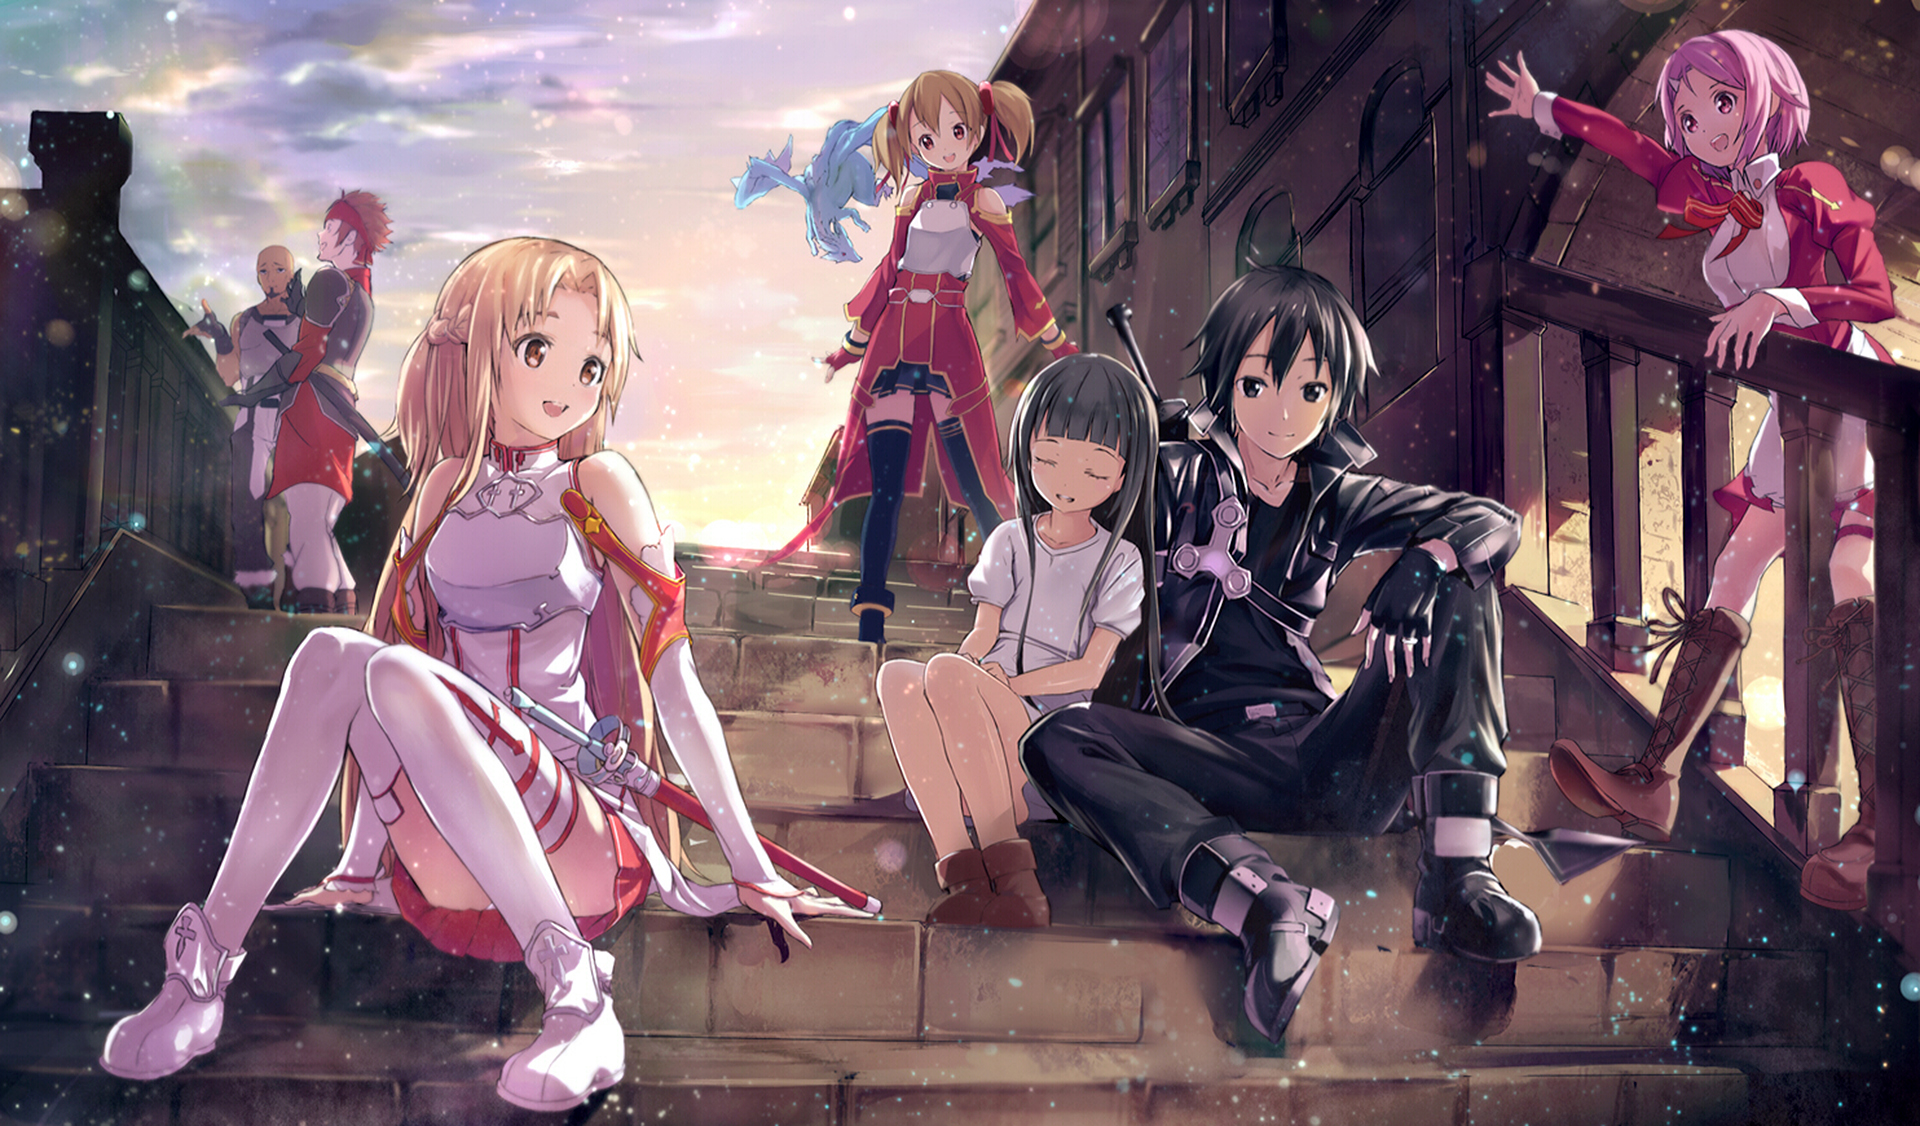 SAO - Charakter Full HD Papel de Parede and Background ...